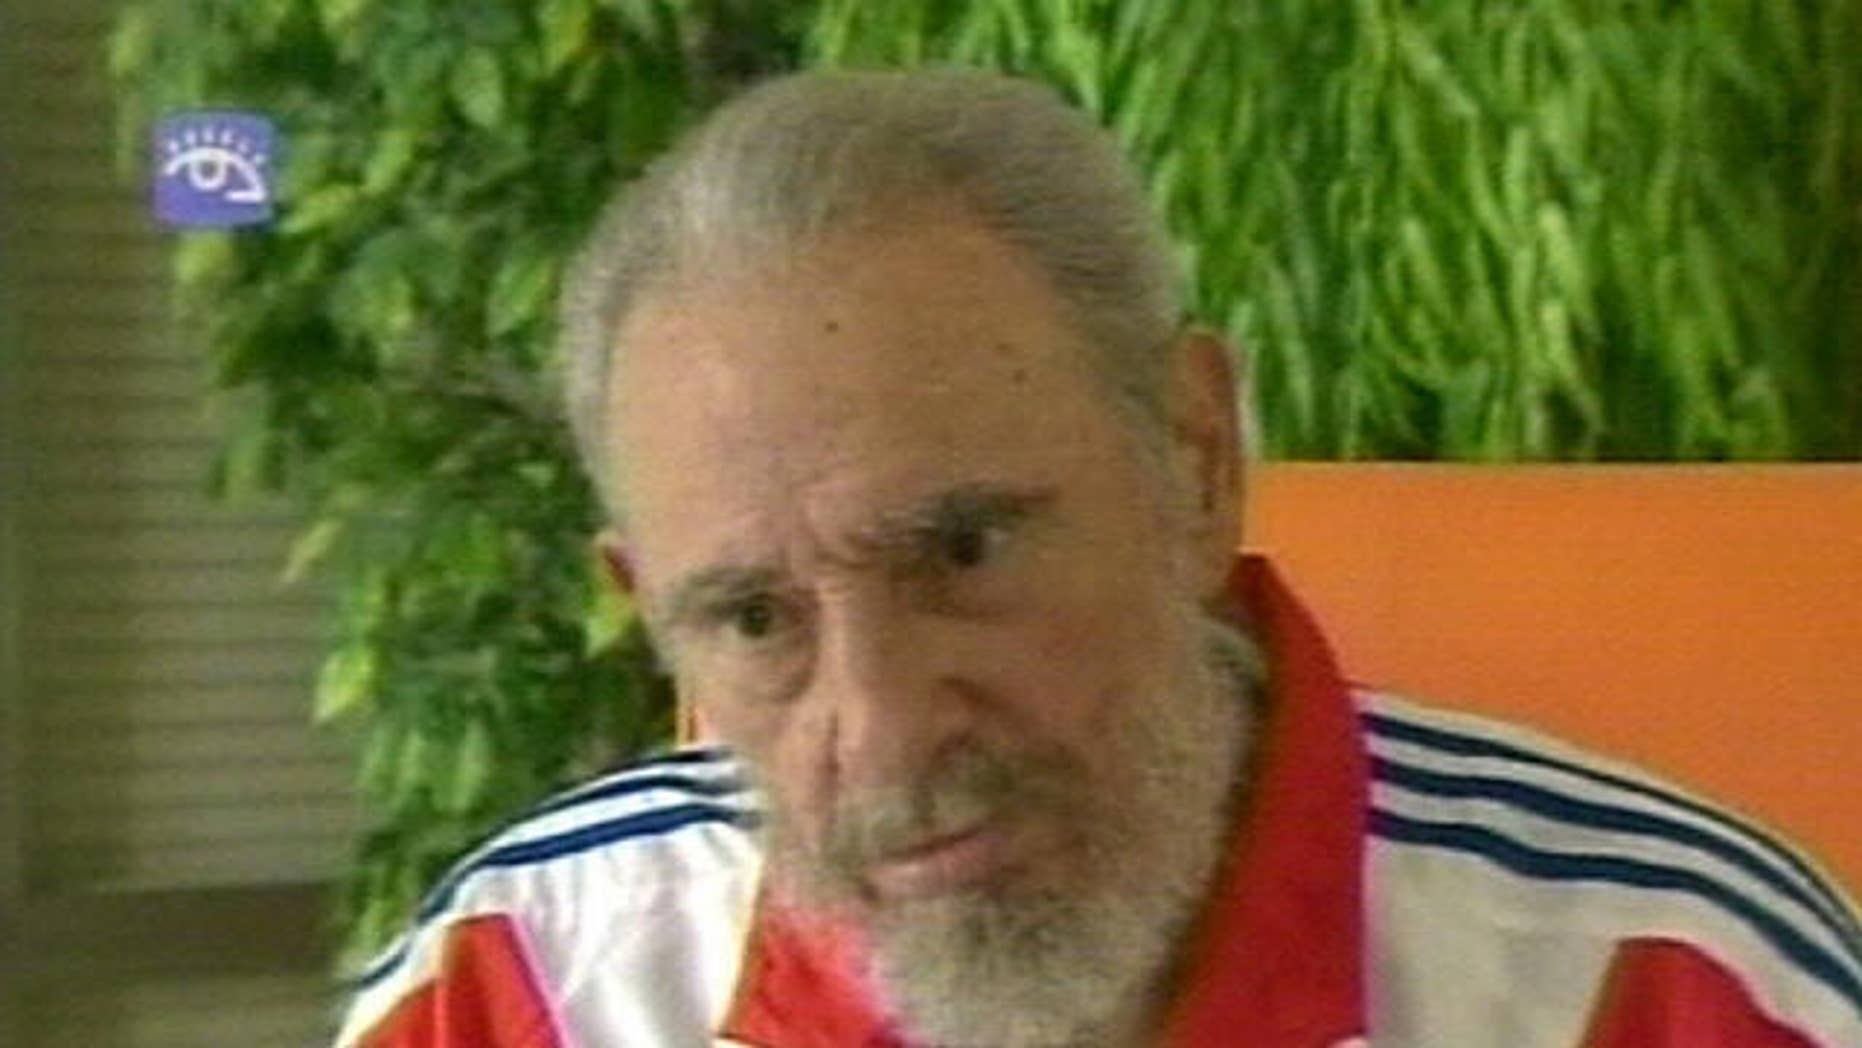 Fidel Castro, who turns 85 Saturday, is rarely seen in public anymore. The former Cuban leader, who handed the reins to his brother, Raul, 80, in 2008, has outlived nine U.S. presidents and numerous assassination attempts.